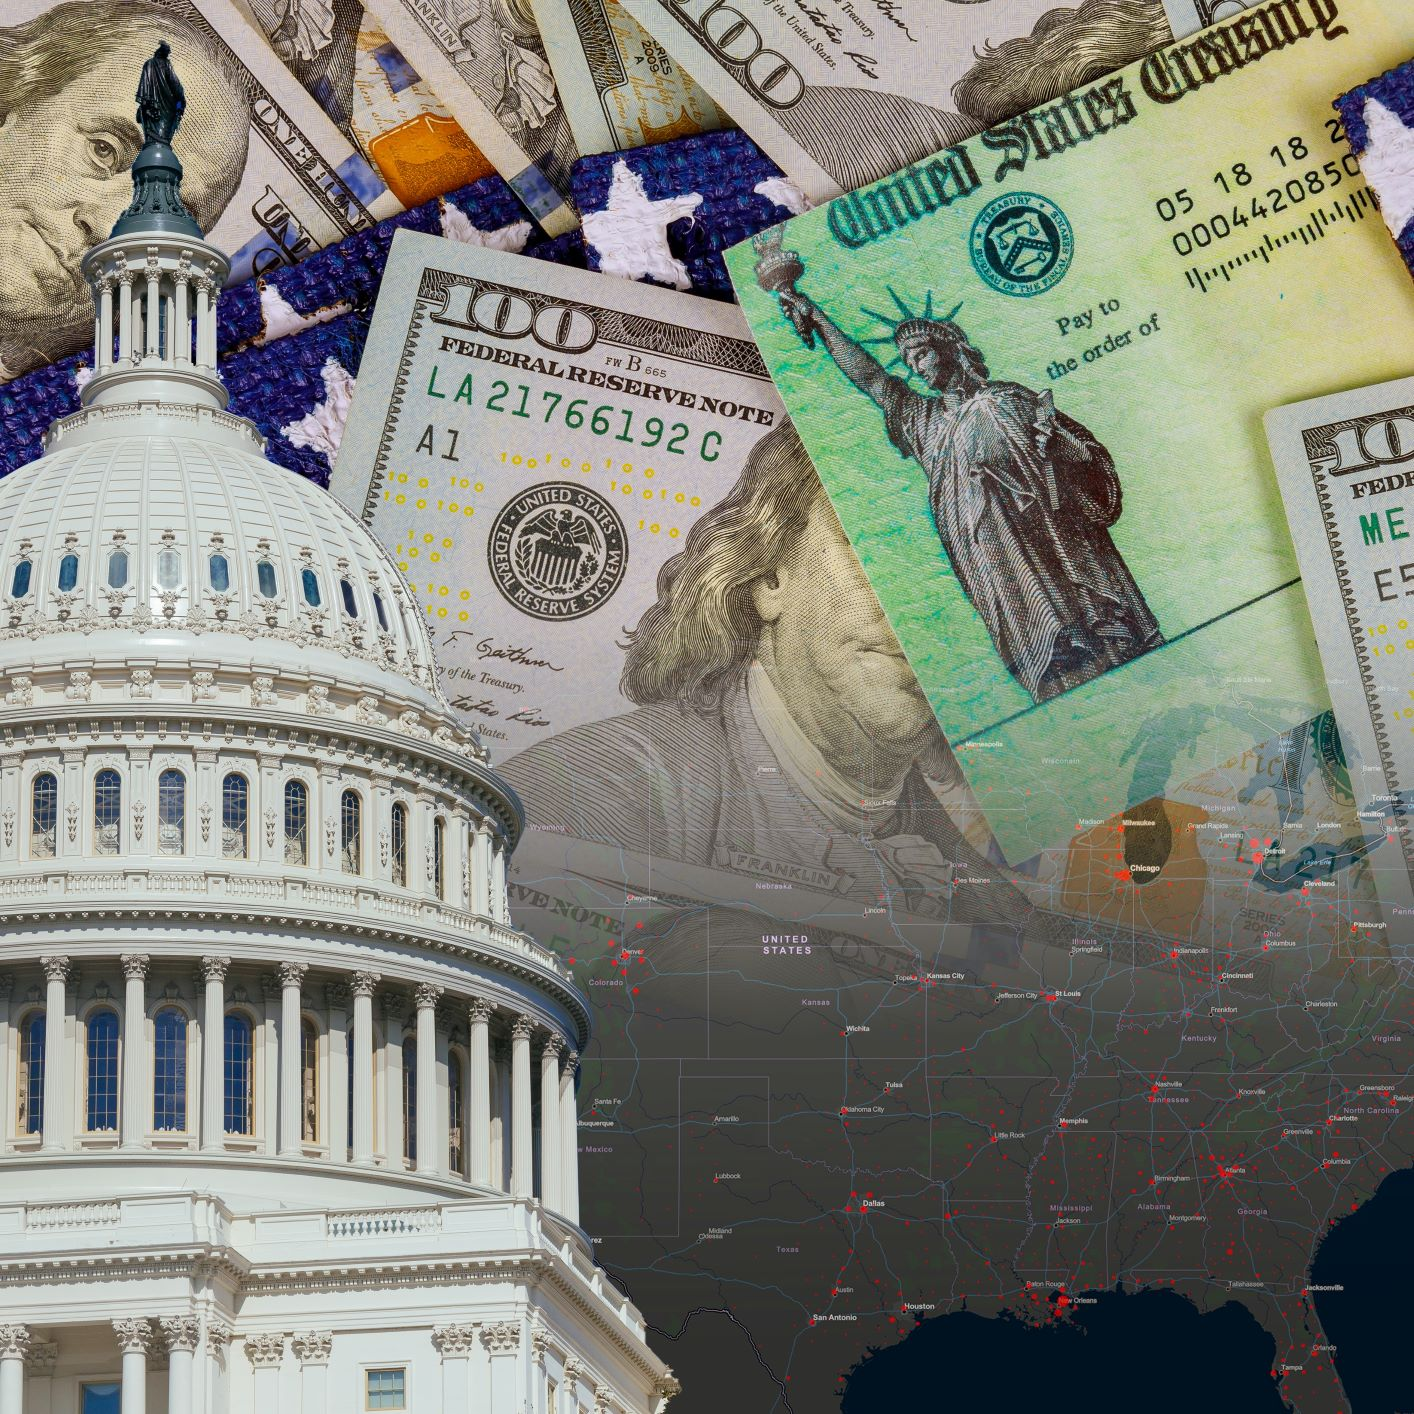 U.S. Capitol in Washington D.C. with Coronavirus financial a stimulus bill individual checks from government USA dollar cash banknote on American flag Global pandemic Covid 19 lockdown